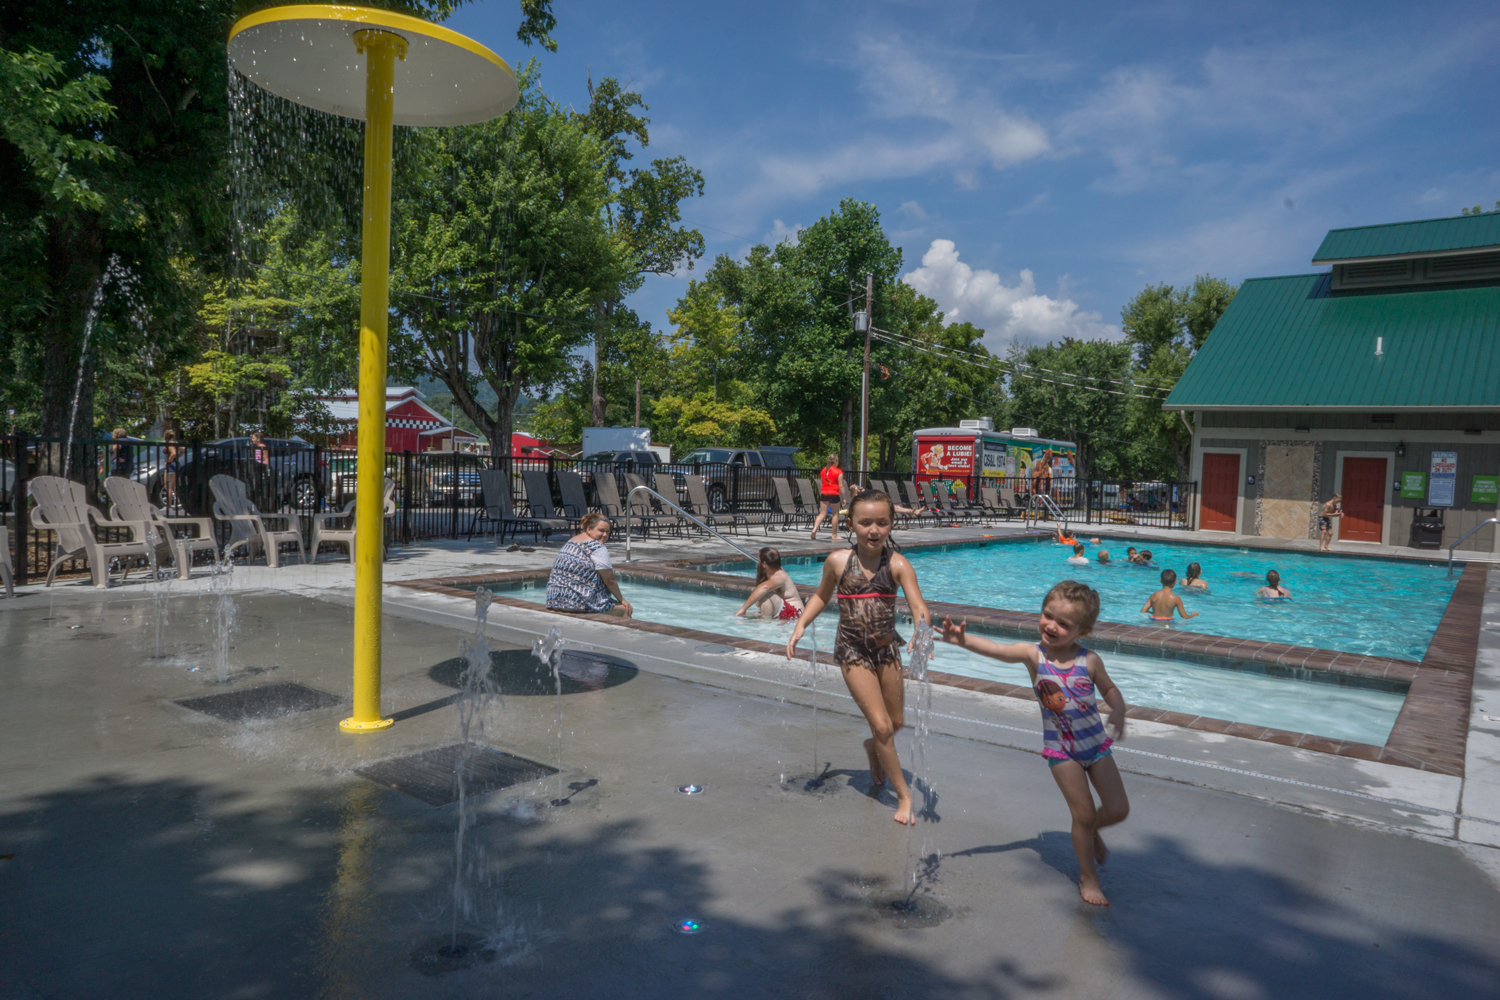 Kids running and smiling around pool on sunny day